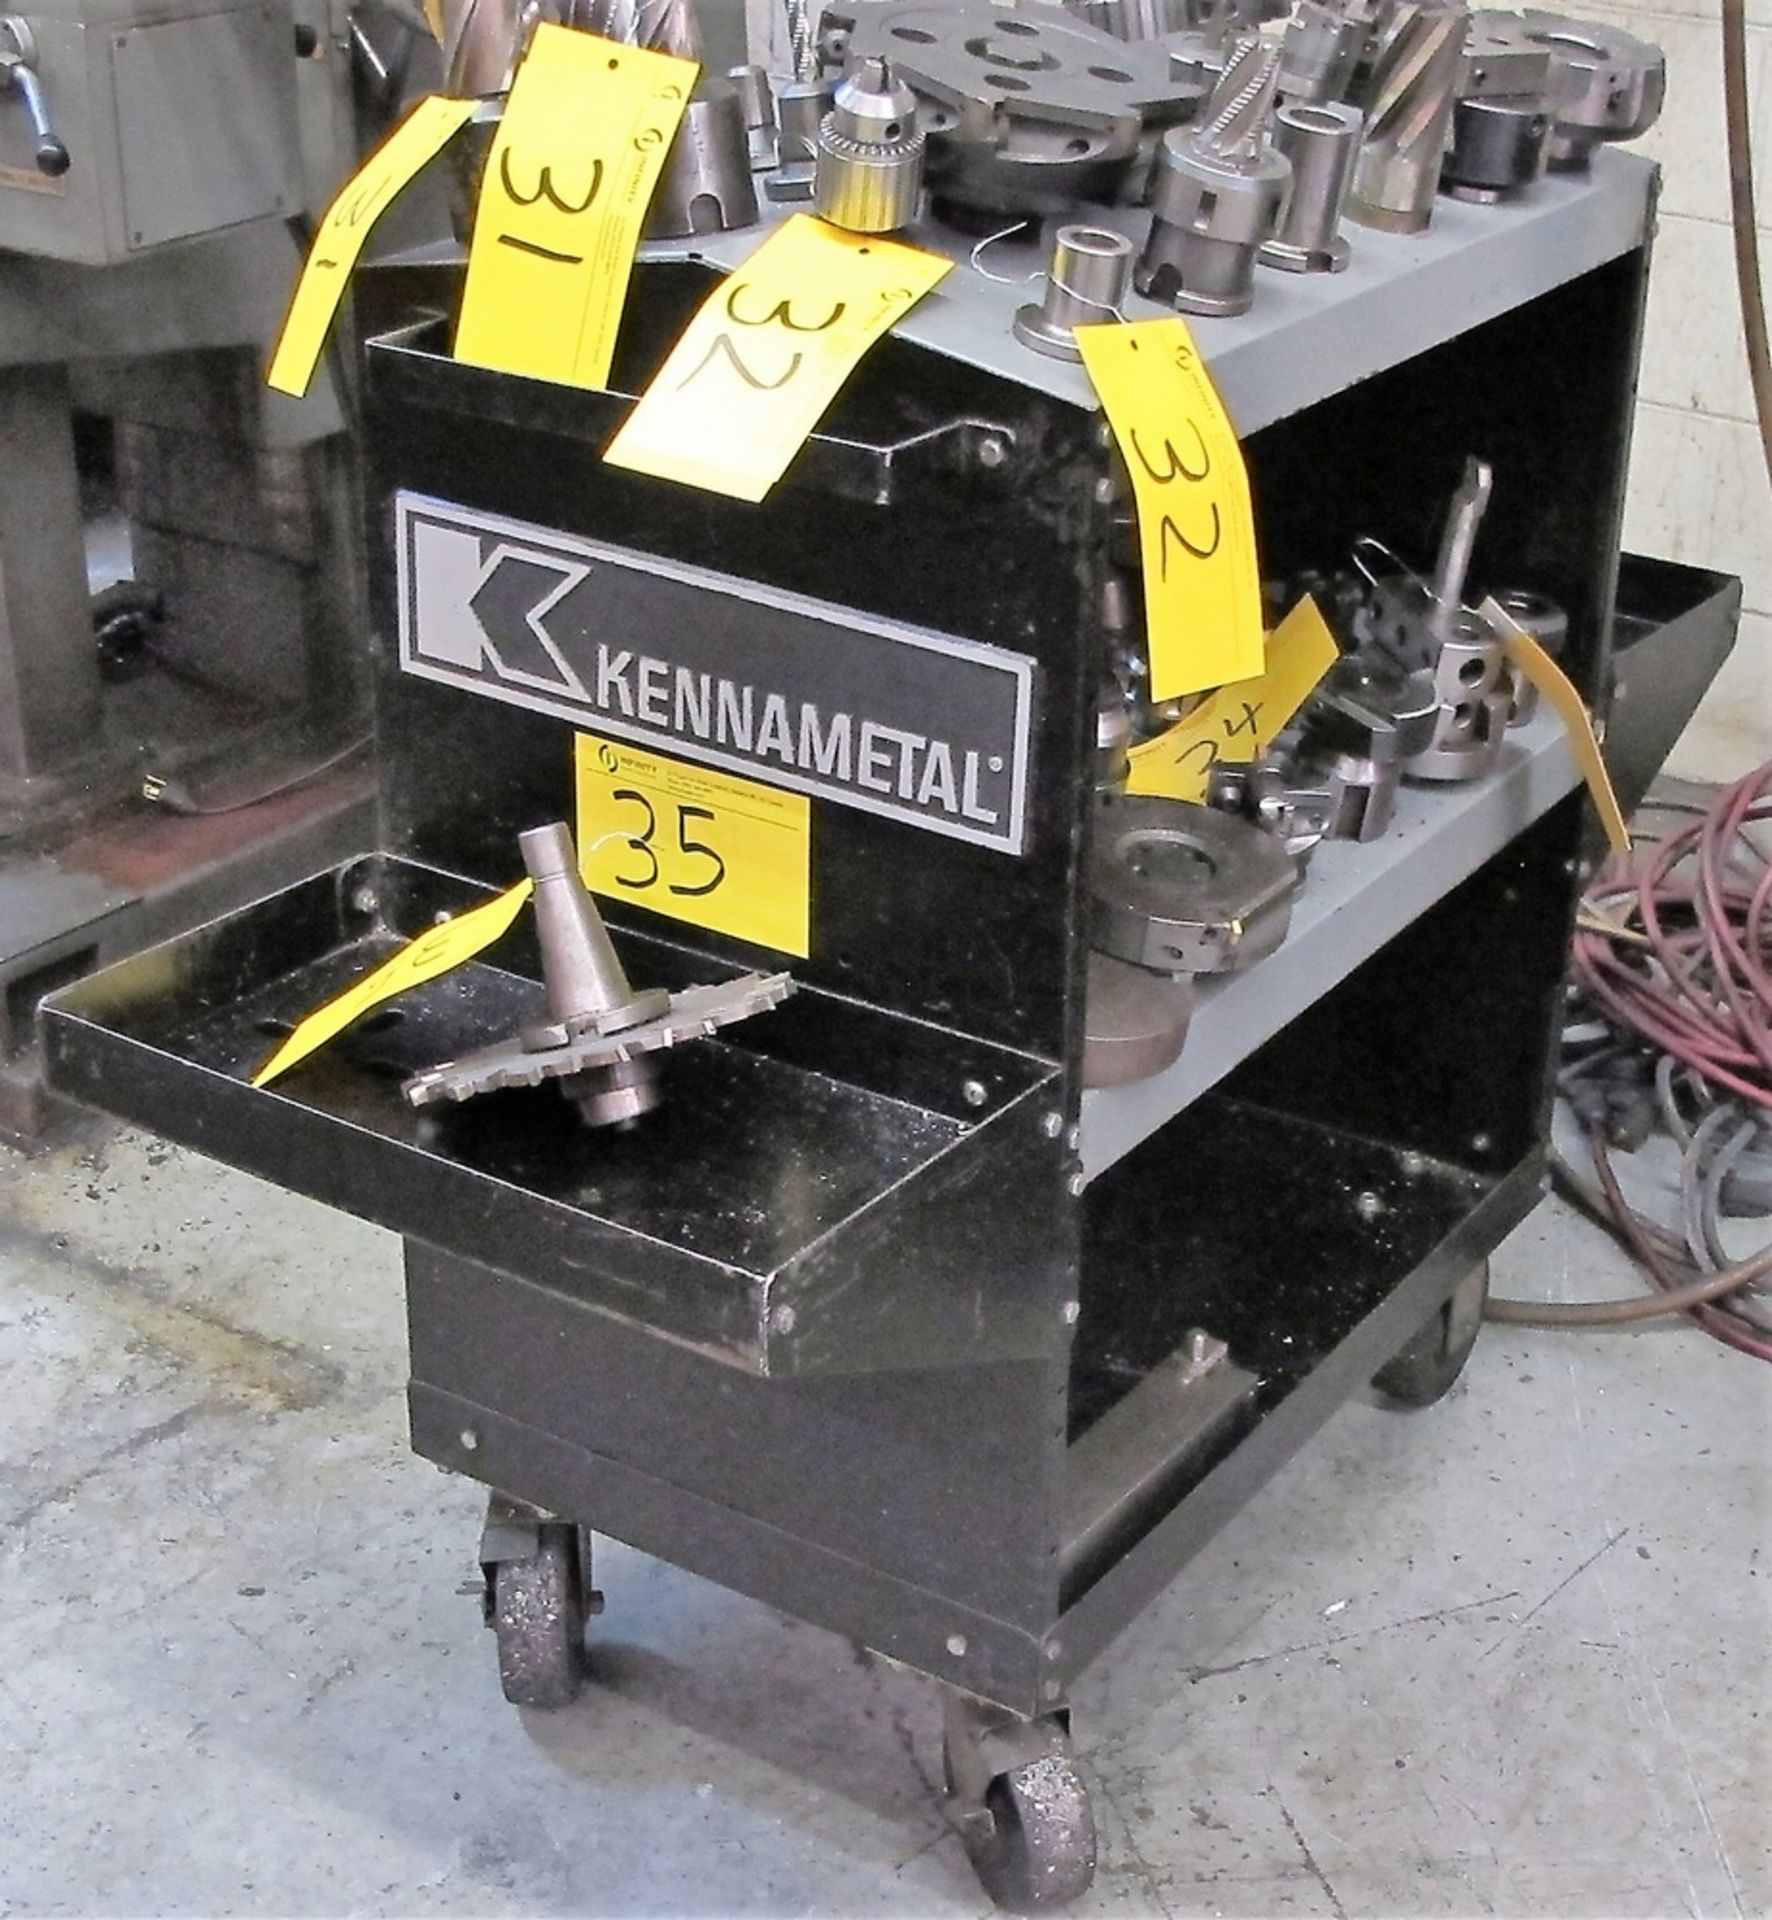 Lot 35 - KENNAMETAL 30 TAPER TOOL HOLDER CART W/ 48 SLOTS & 1 30 TAPER WITH ATTACHMENT